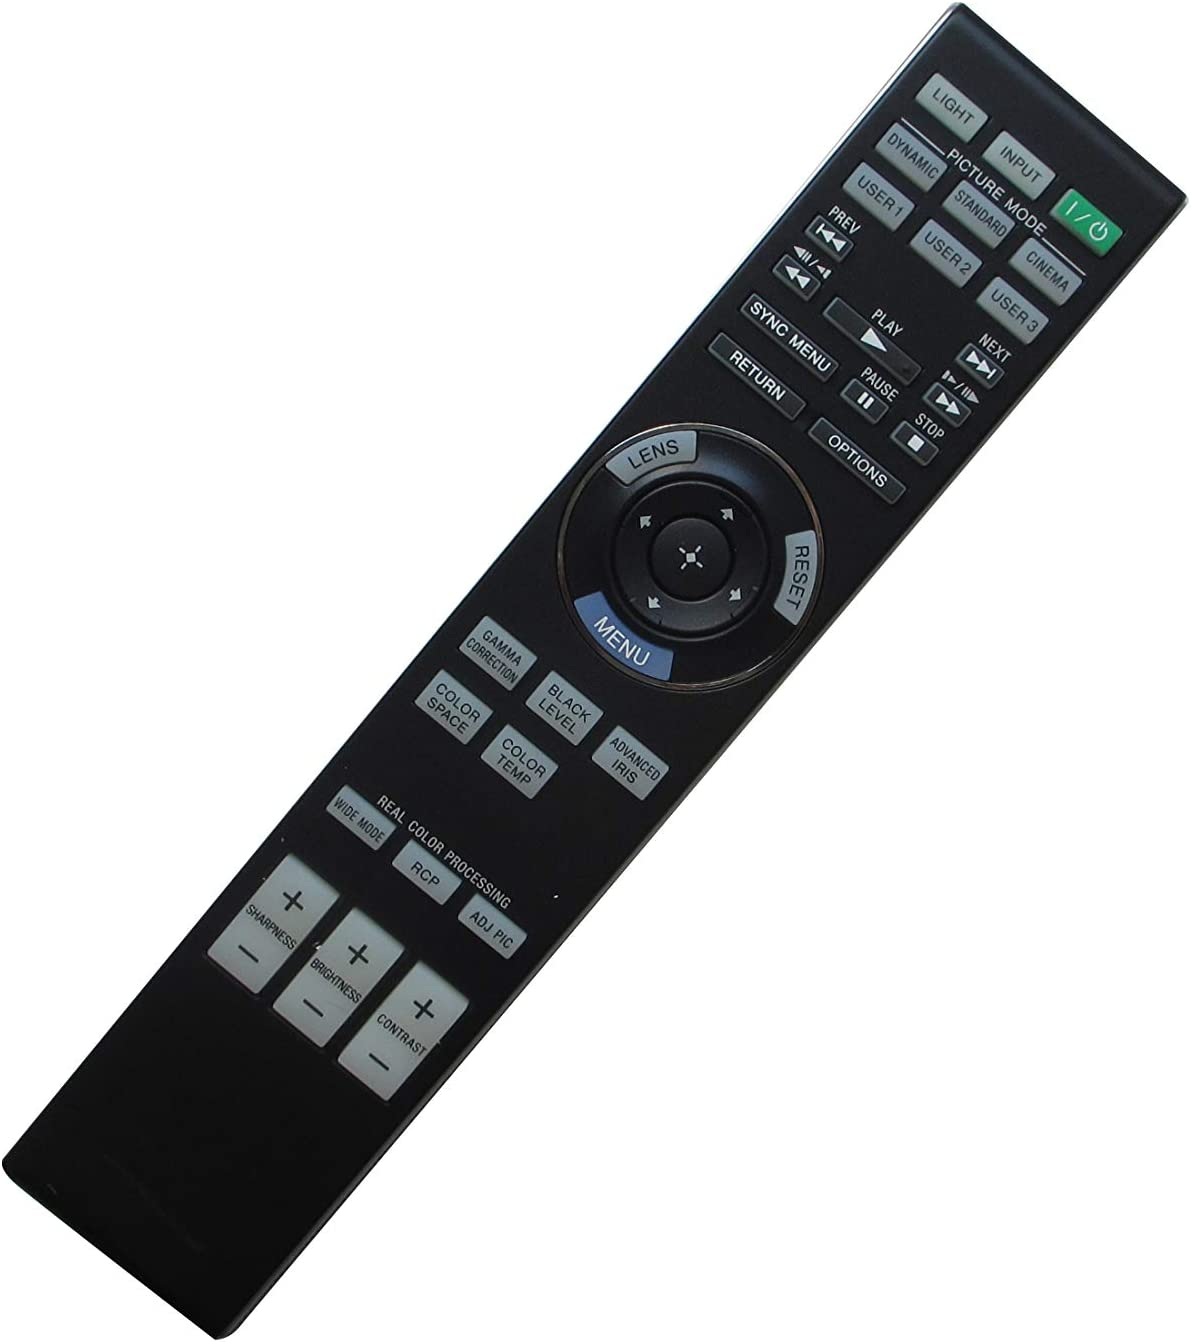 Universal Replacement Remote Control for Sony VPL-AW15 VPL-AW10 VPL-VW95EW SXRD 3LCD Projector